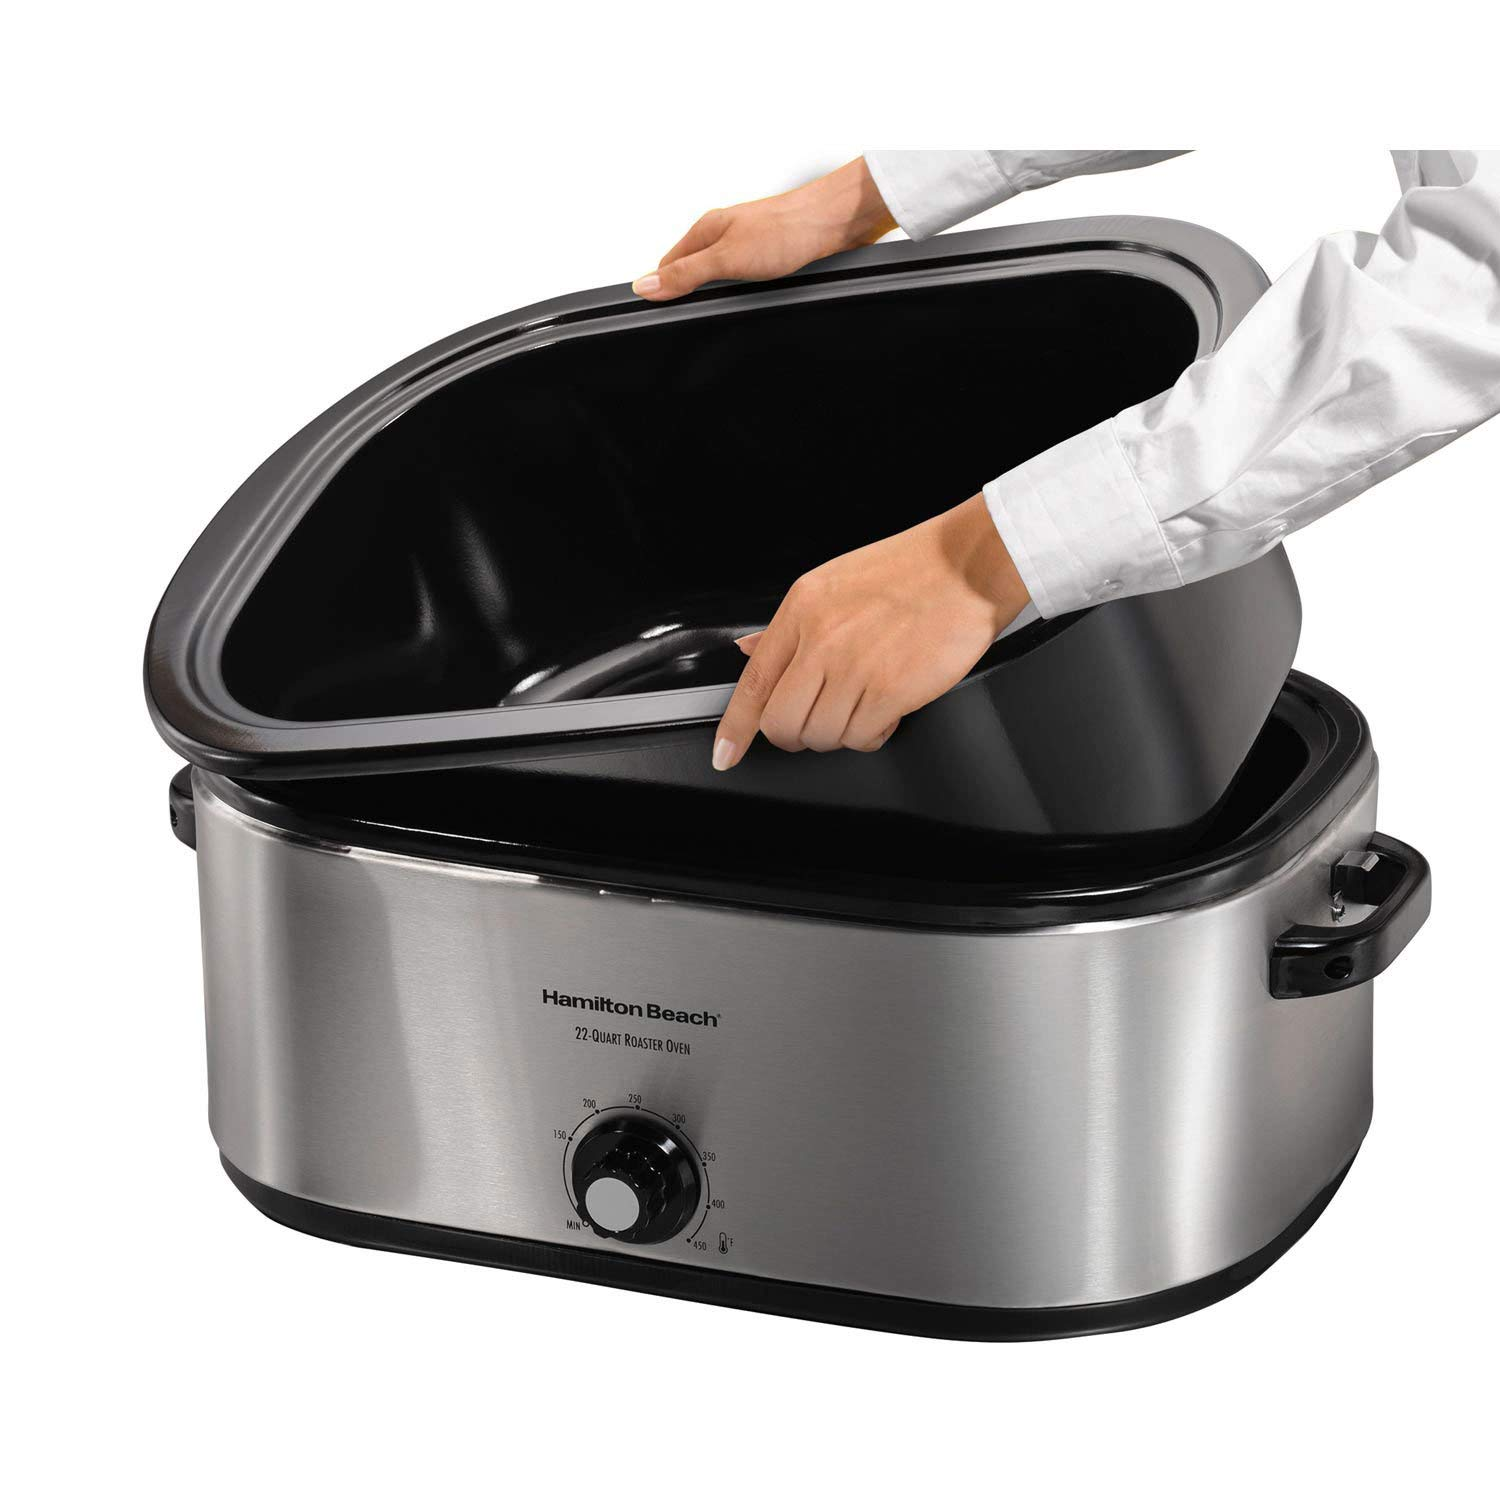 Hamilton Beach 32229R 22 Quart Stainless Steel Electric Roaster Oven, Silver